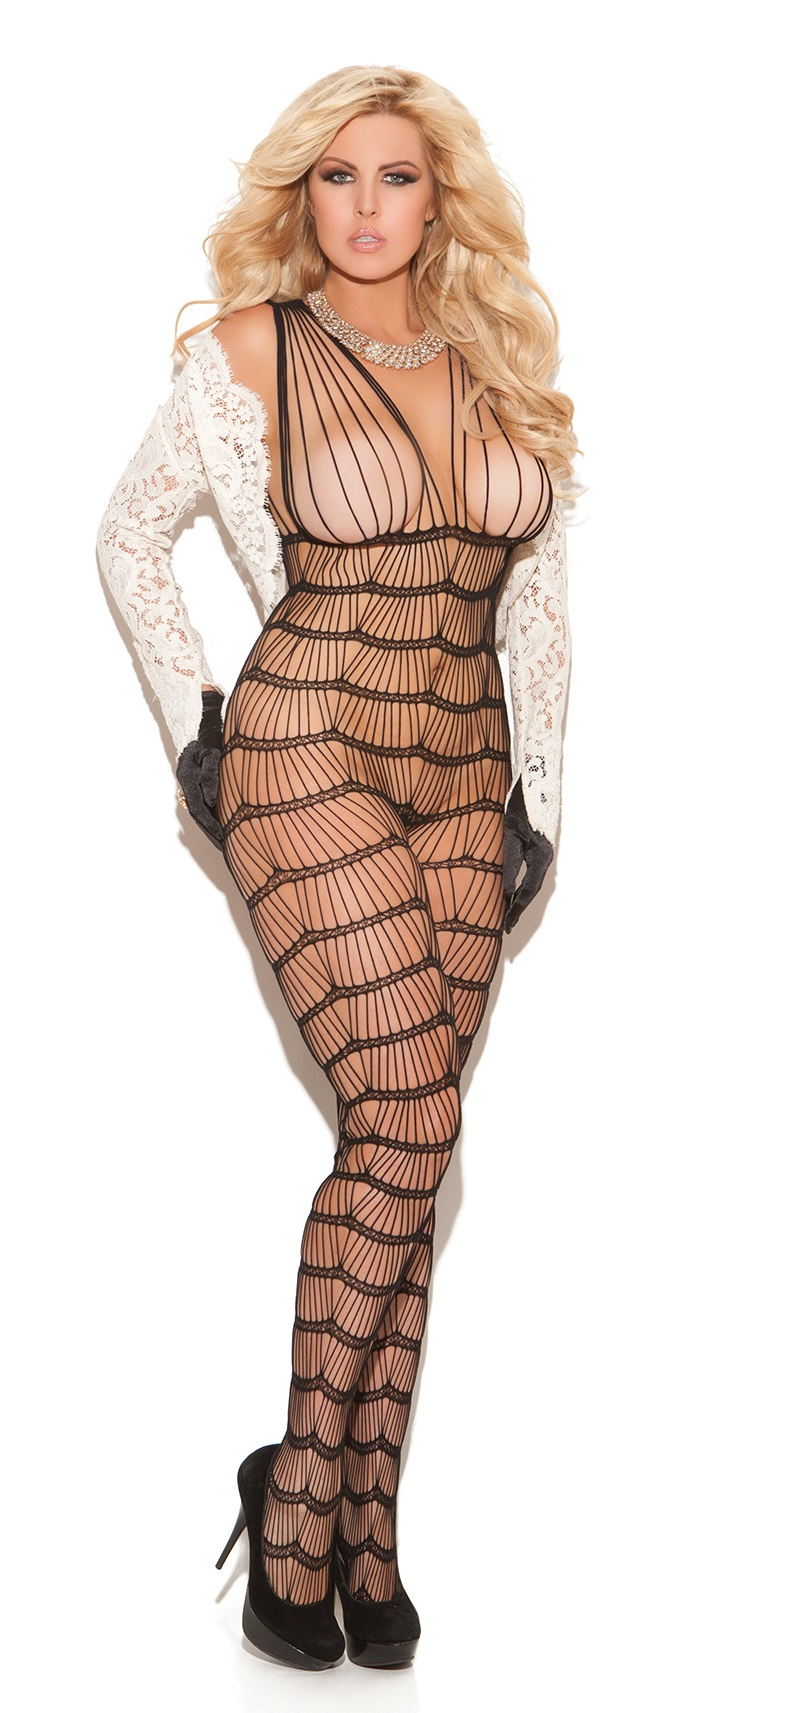 Plus Size Stretch Lace Halter Bodystocking by Shirley of